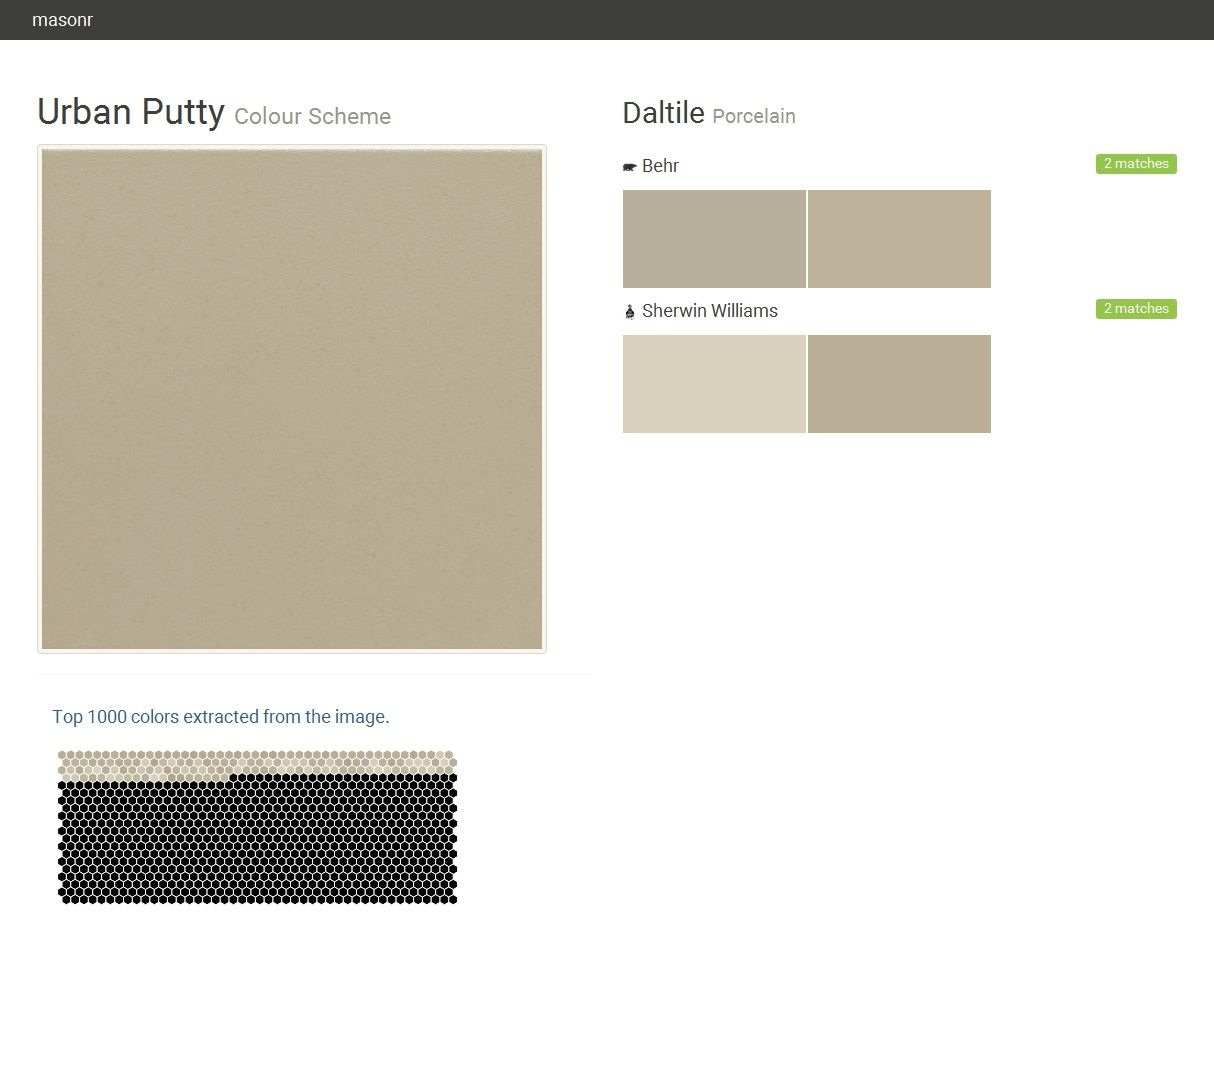 Urban Putty Colour Scheme Porcelain Daltile Behr Sherwin Williams Click The Gray Visit On To See Matching Paint Names